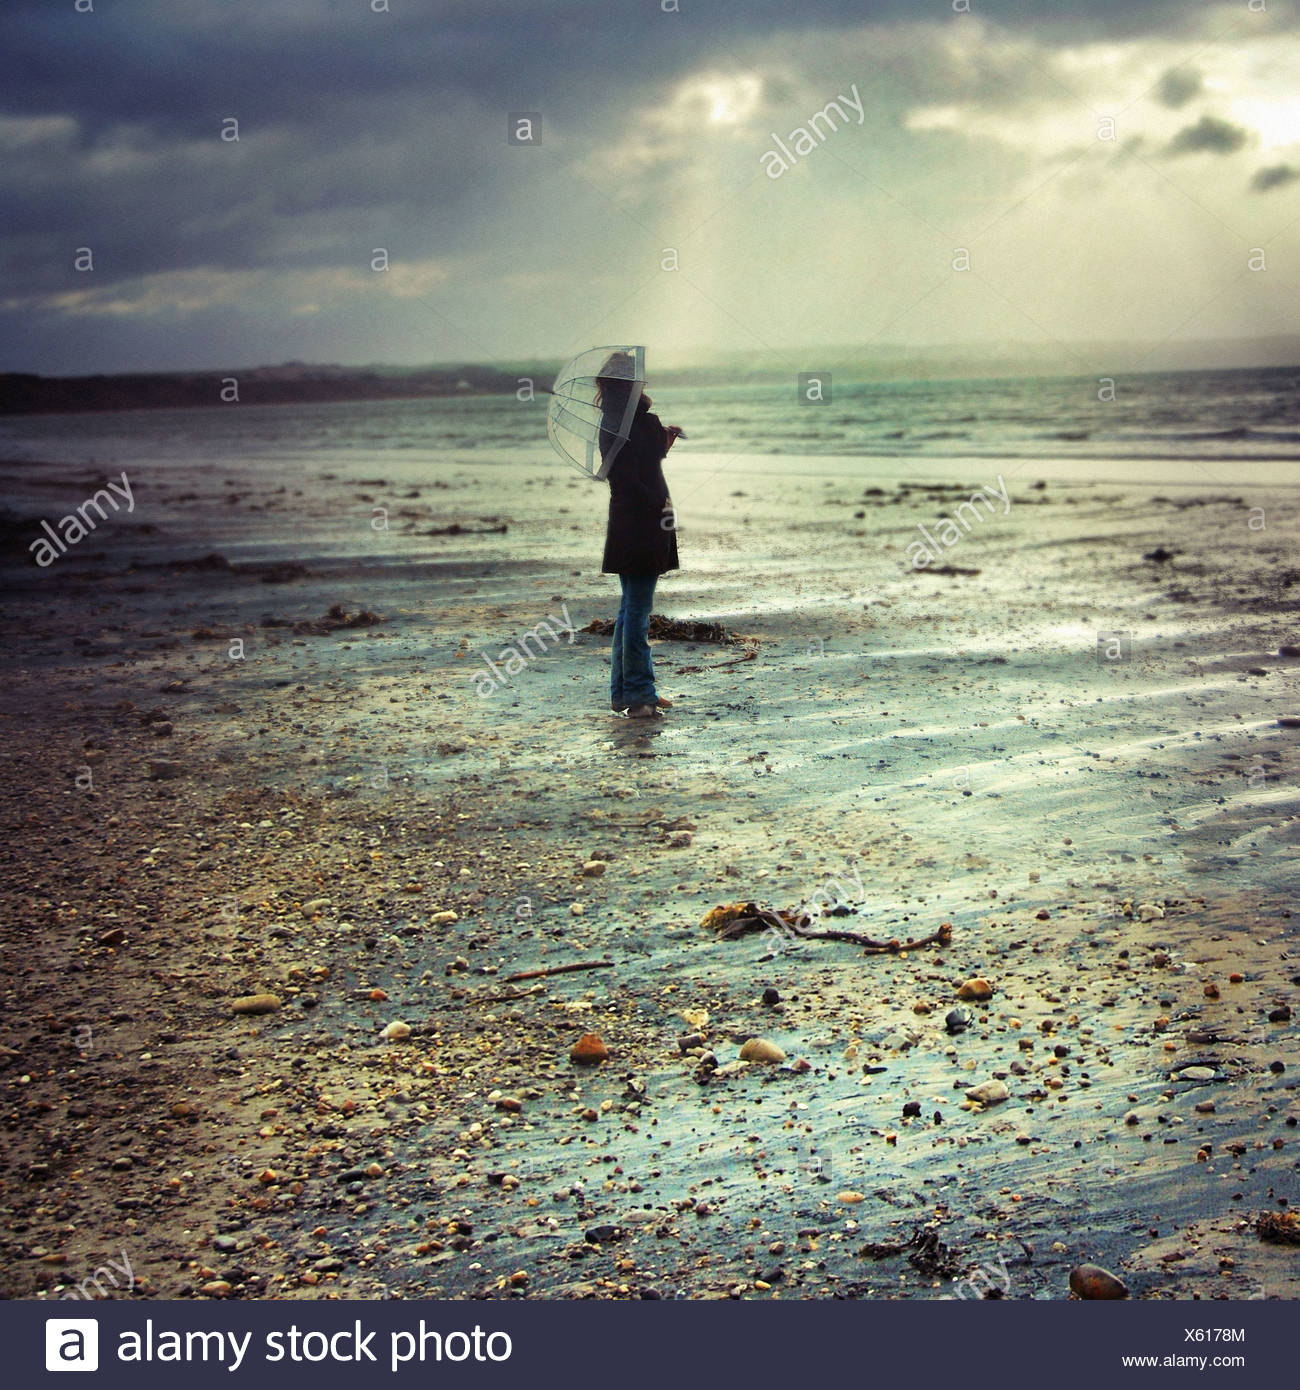 Young woman with umbrella standing alone on a stony beach on a rainy day with dark clouds - Stock Image